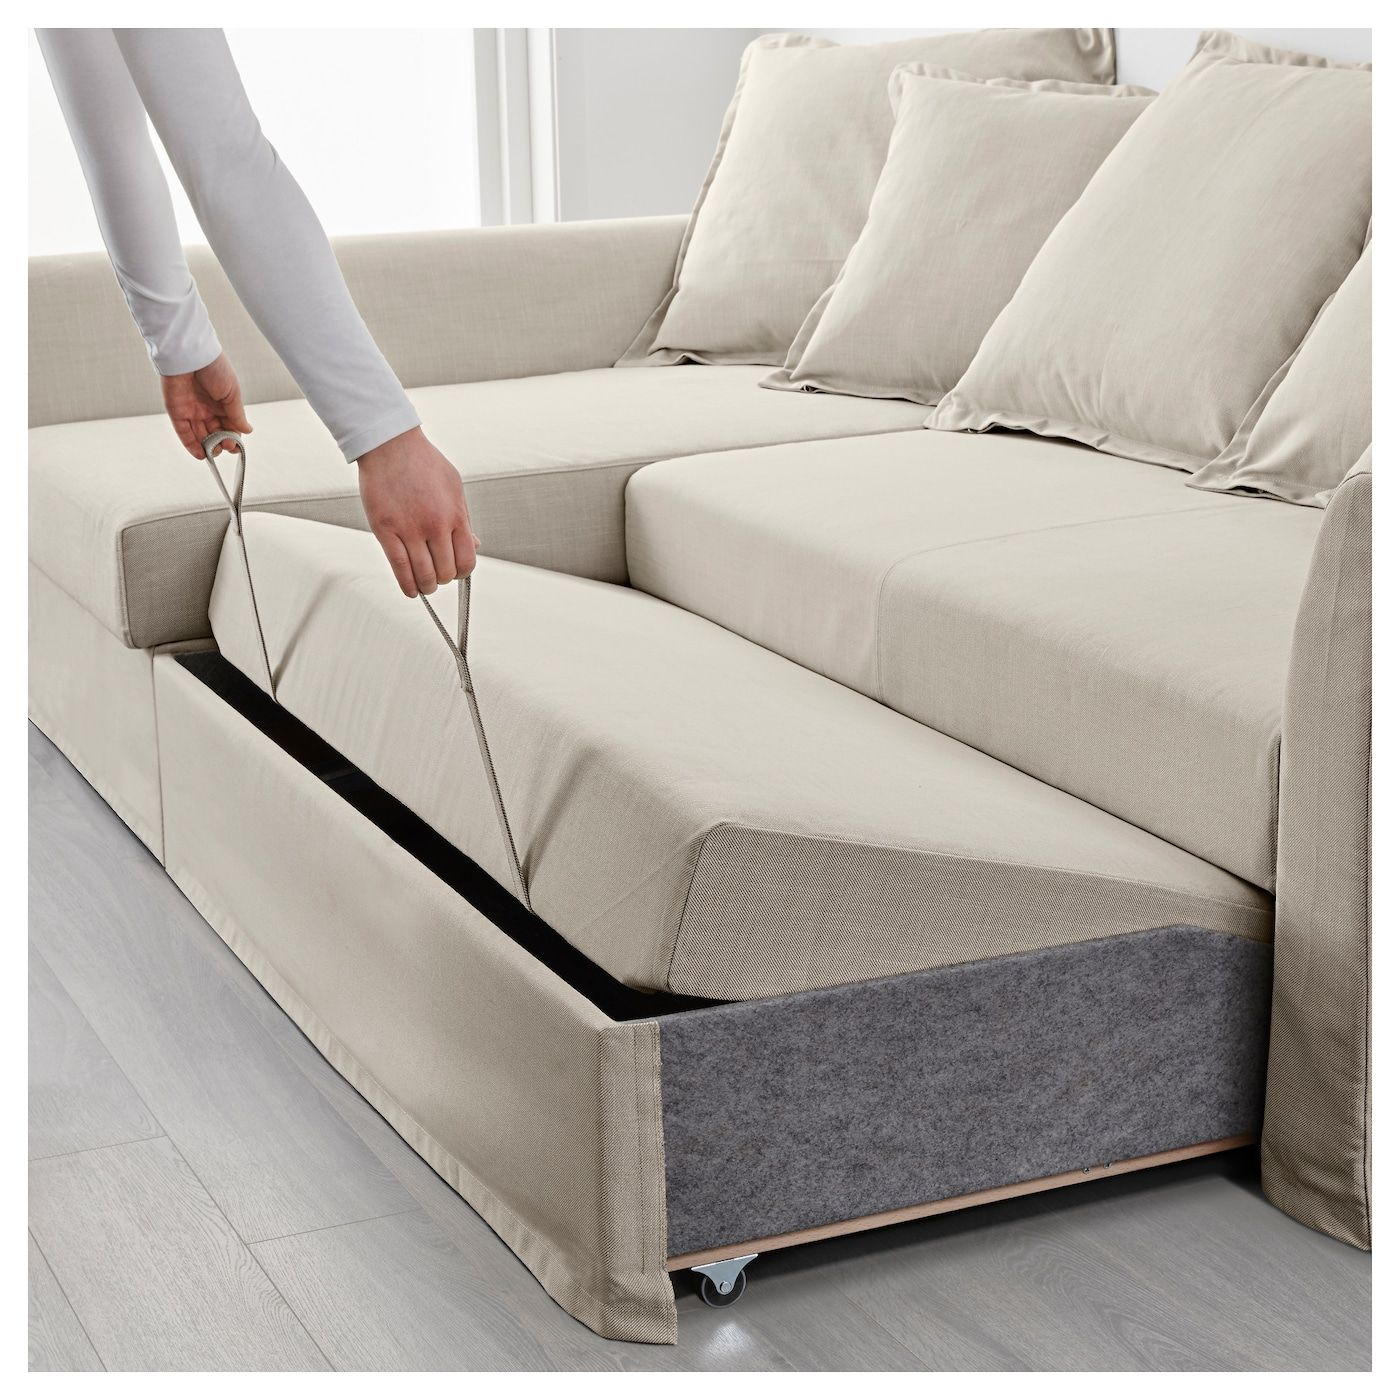 Ikea Us Furniture And Home Furnishings Corner Sofa Bed Sofa Bed With Chaise Sofa Bed Frame